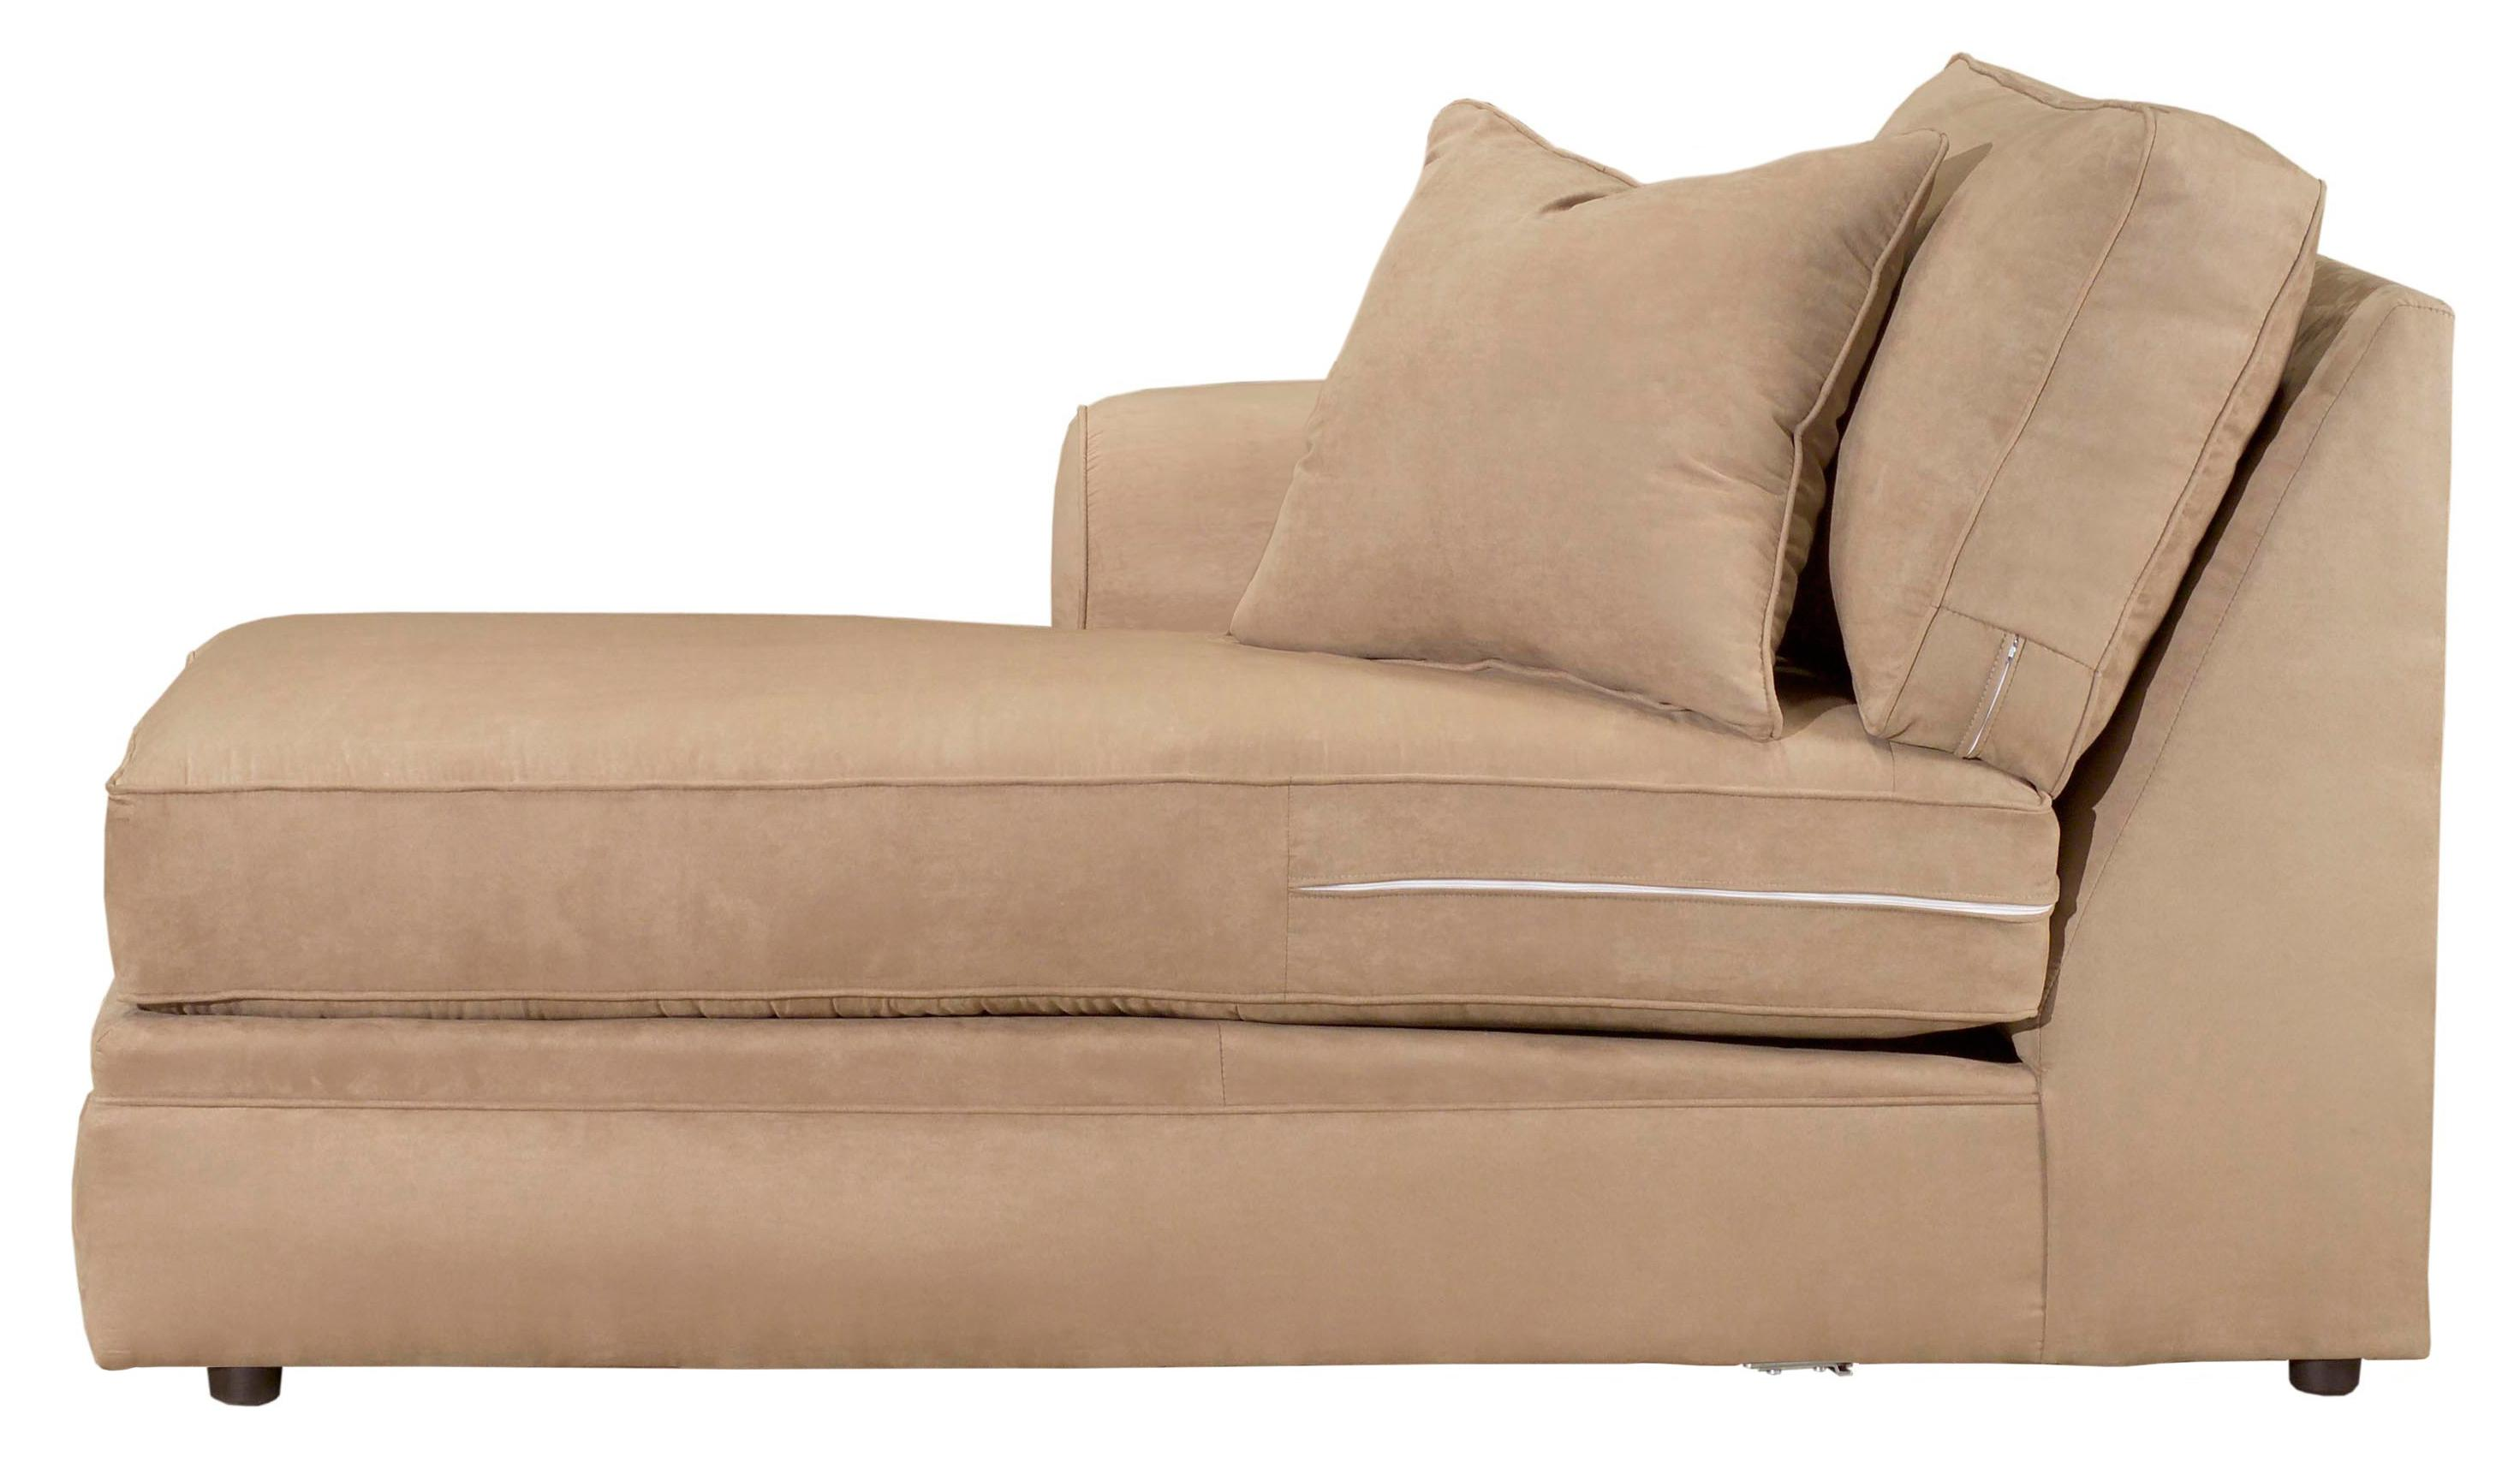 Broyhill furniture veronica chaise sectional sofa conlin for Broyhill chaise